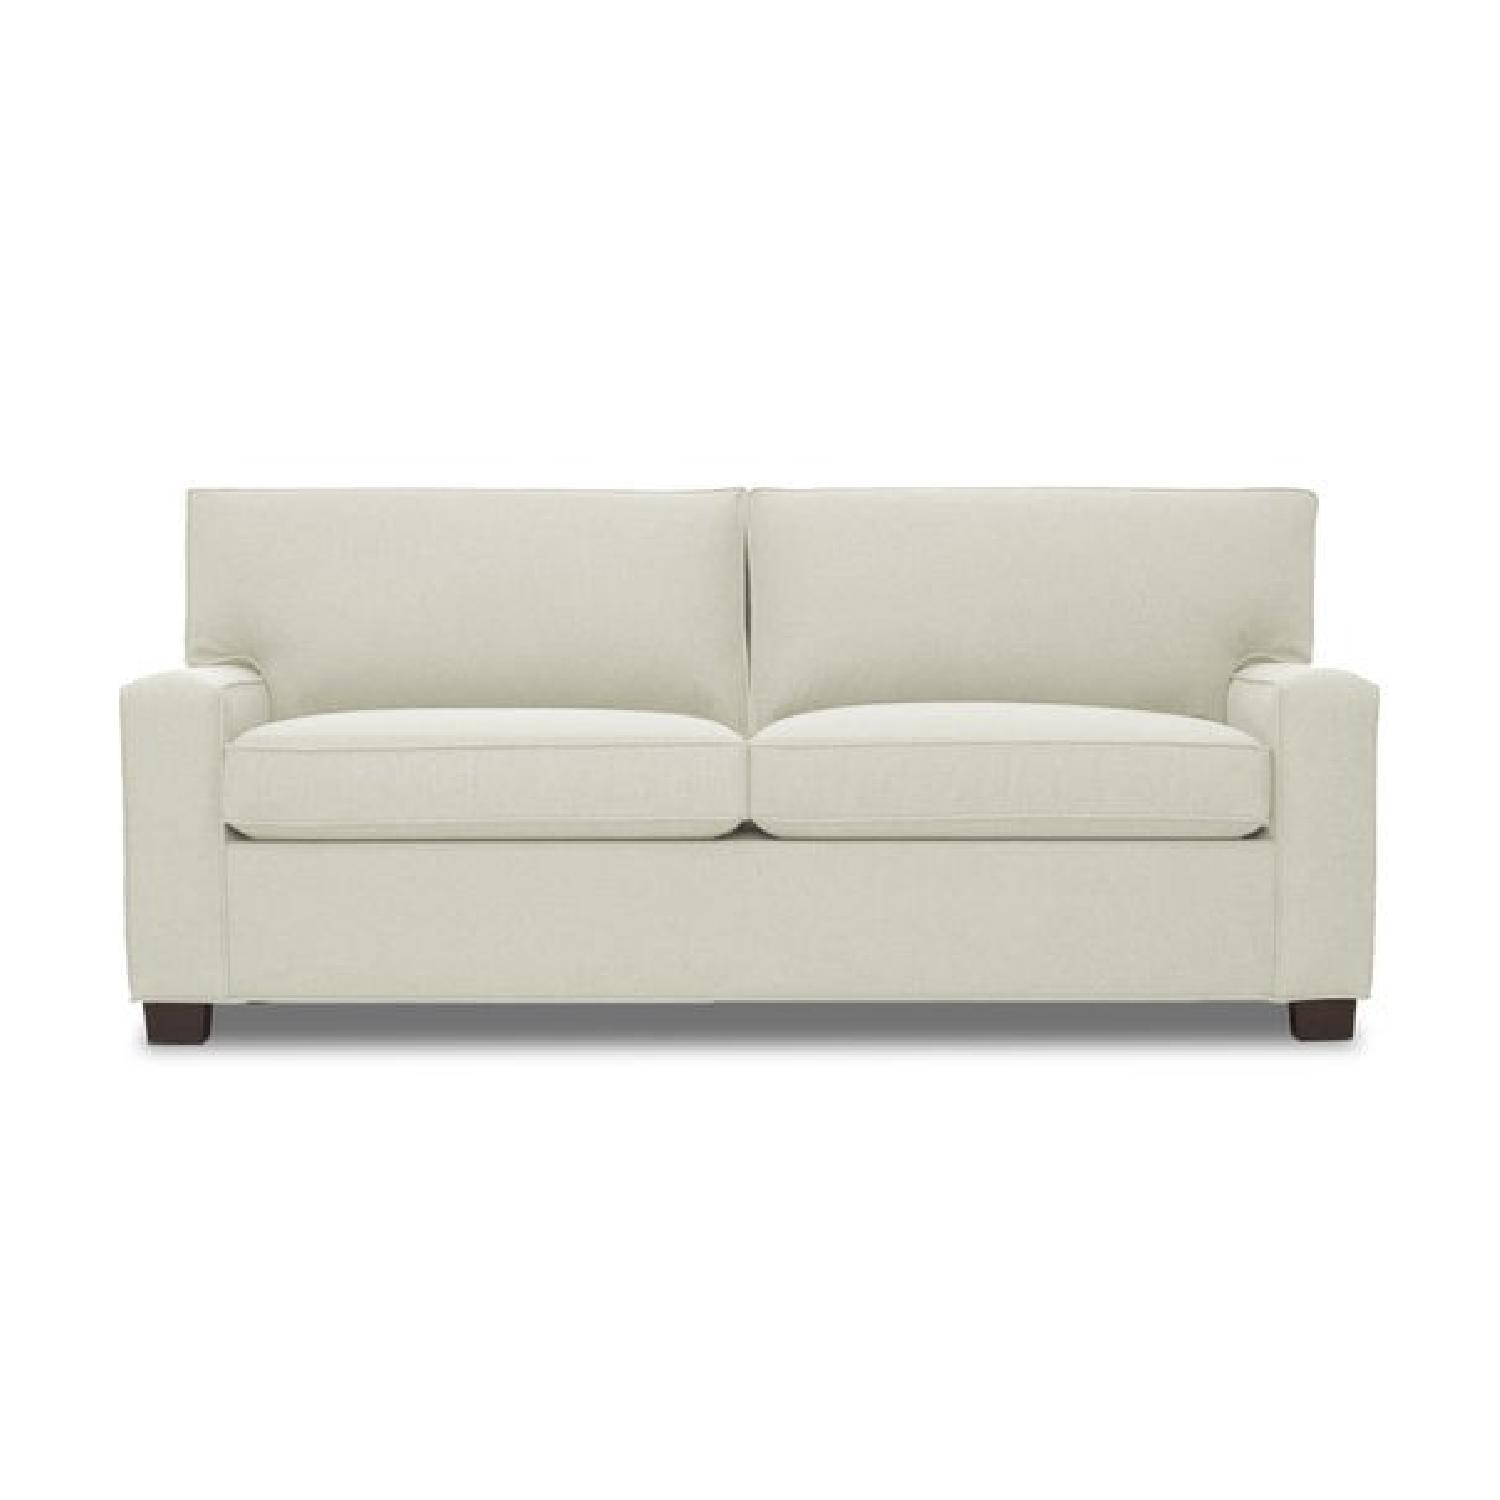 Mitchell Gold + Bob Williams Alex Queen Sleeper Sofa